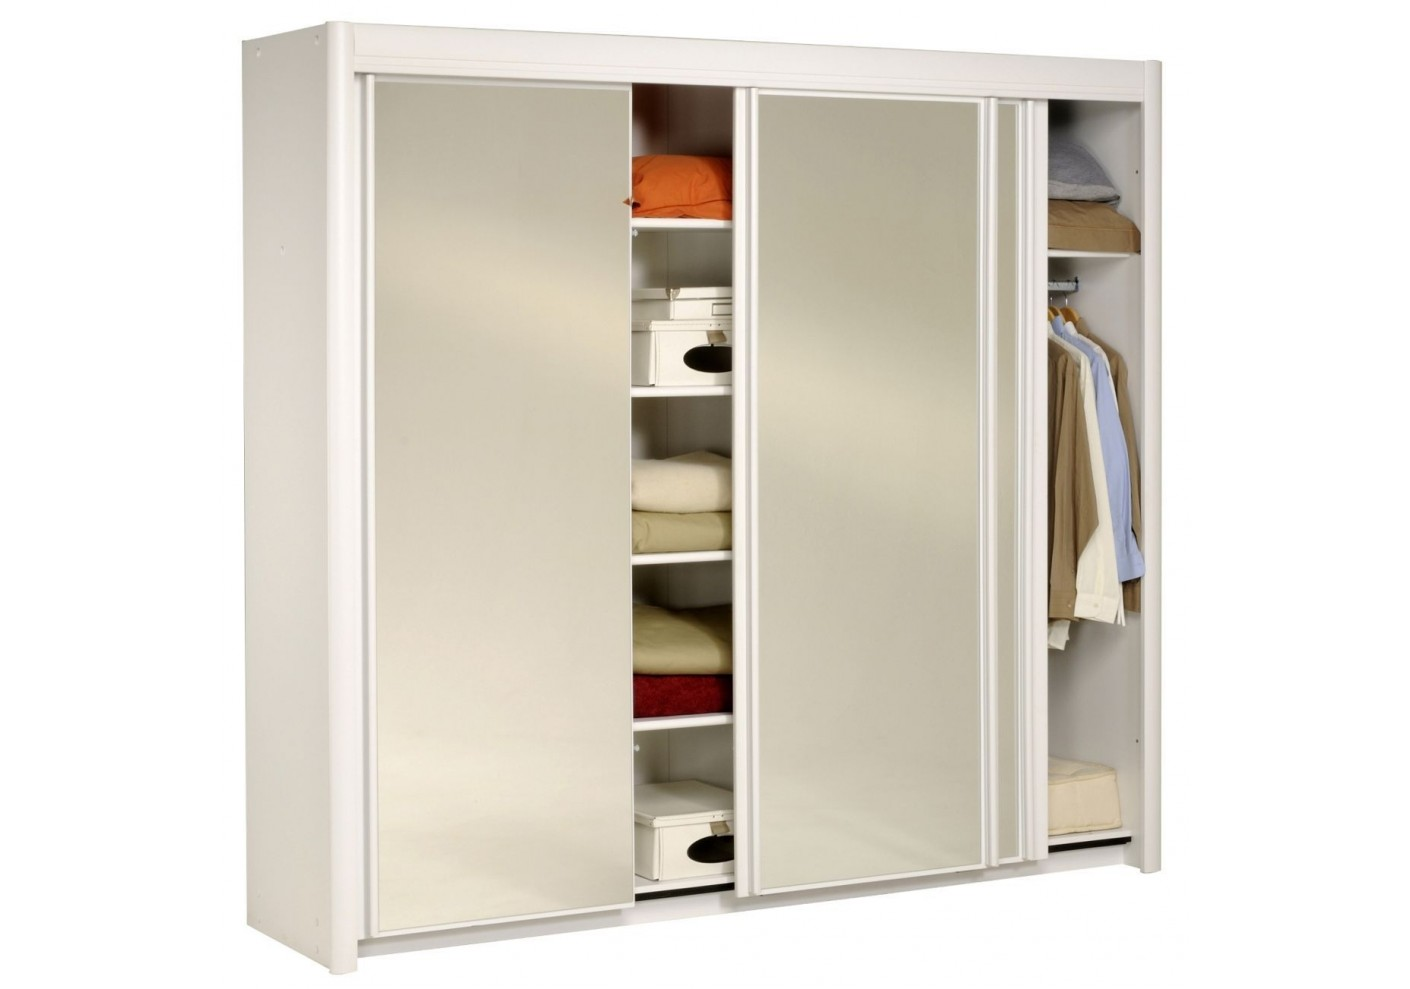 Conforama Armoire Pluton Armoire 3 Portes But Interesting But Congelateur Armoire